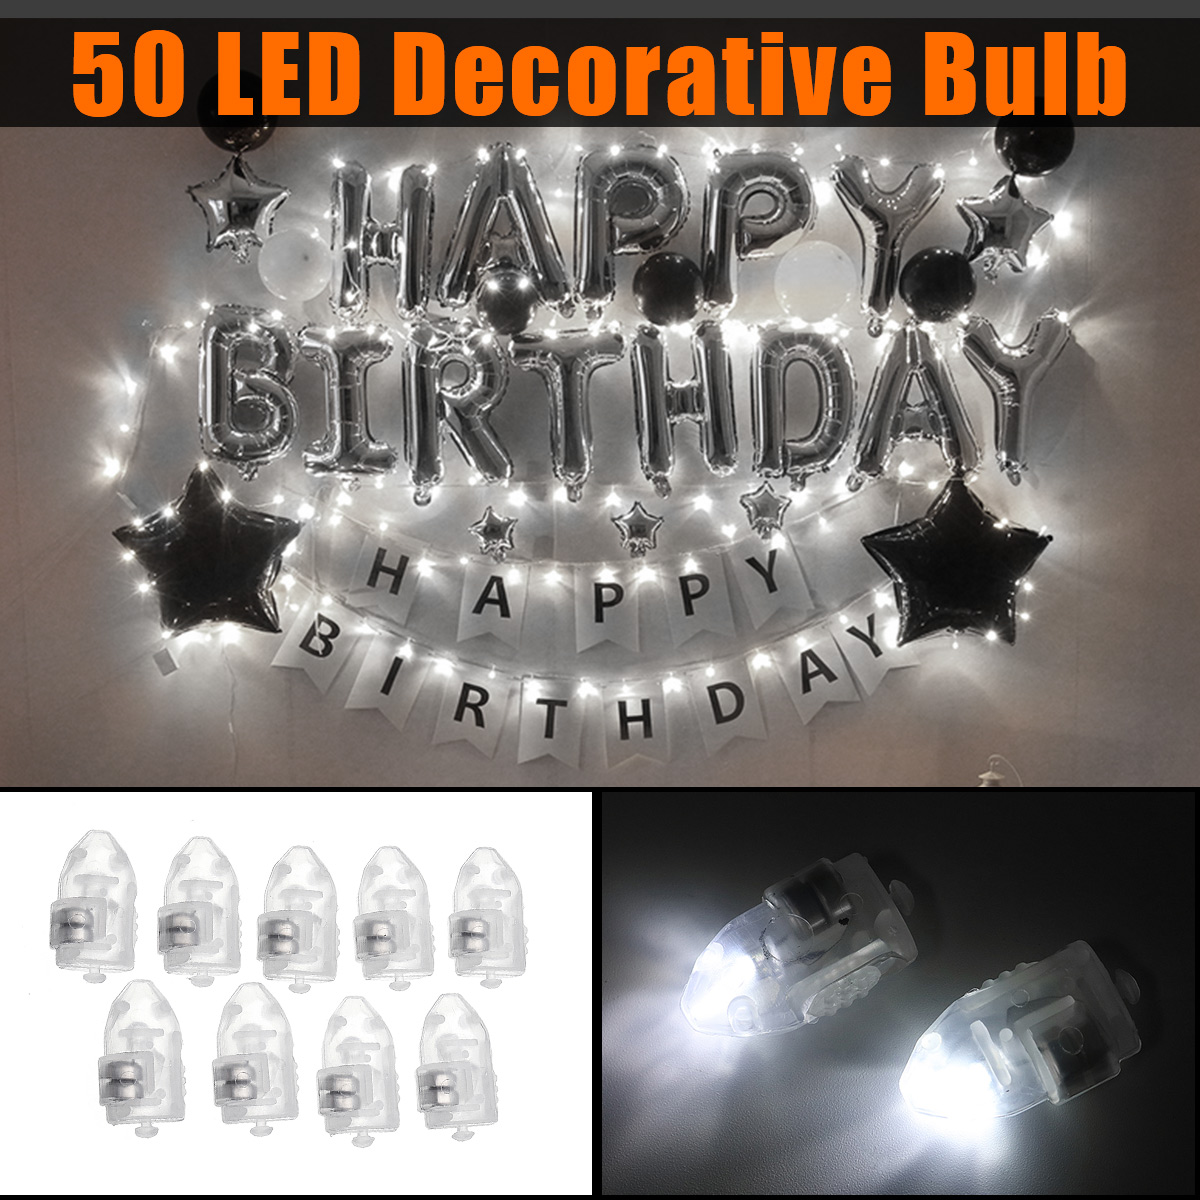 50PCS Mini White Coloful LED Ball Holiday Light for Wedding Party Birthday Festival Home Decoration